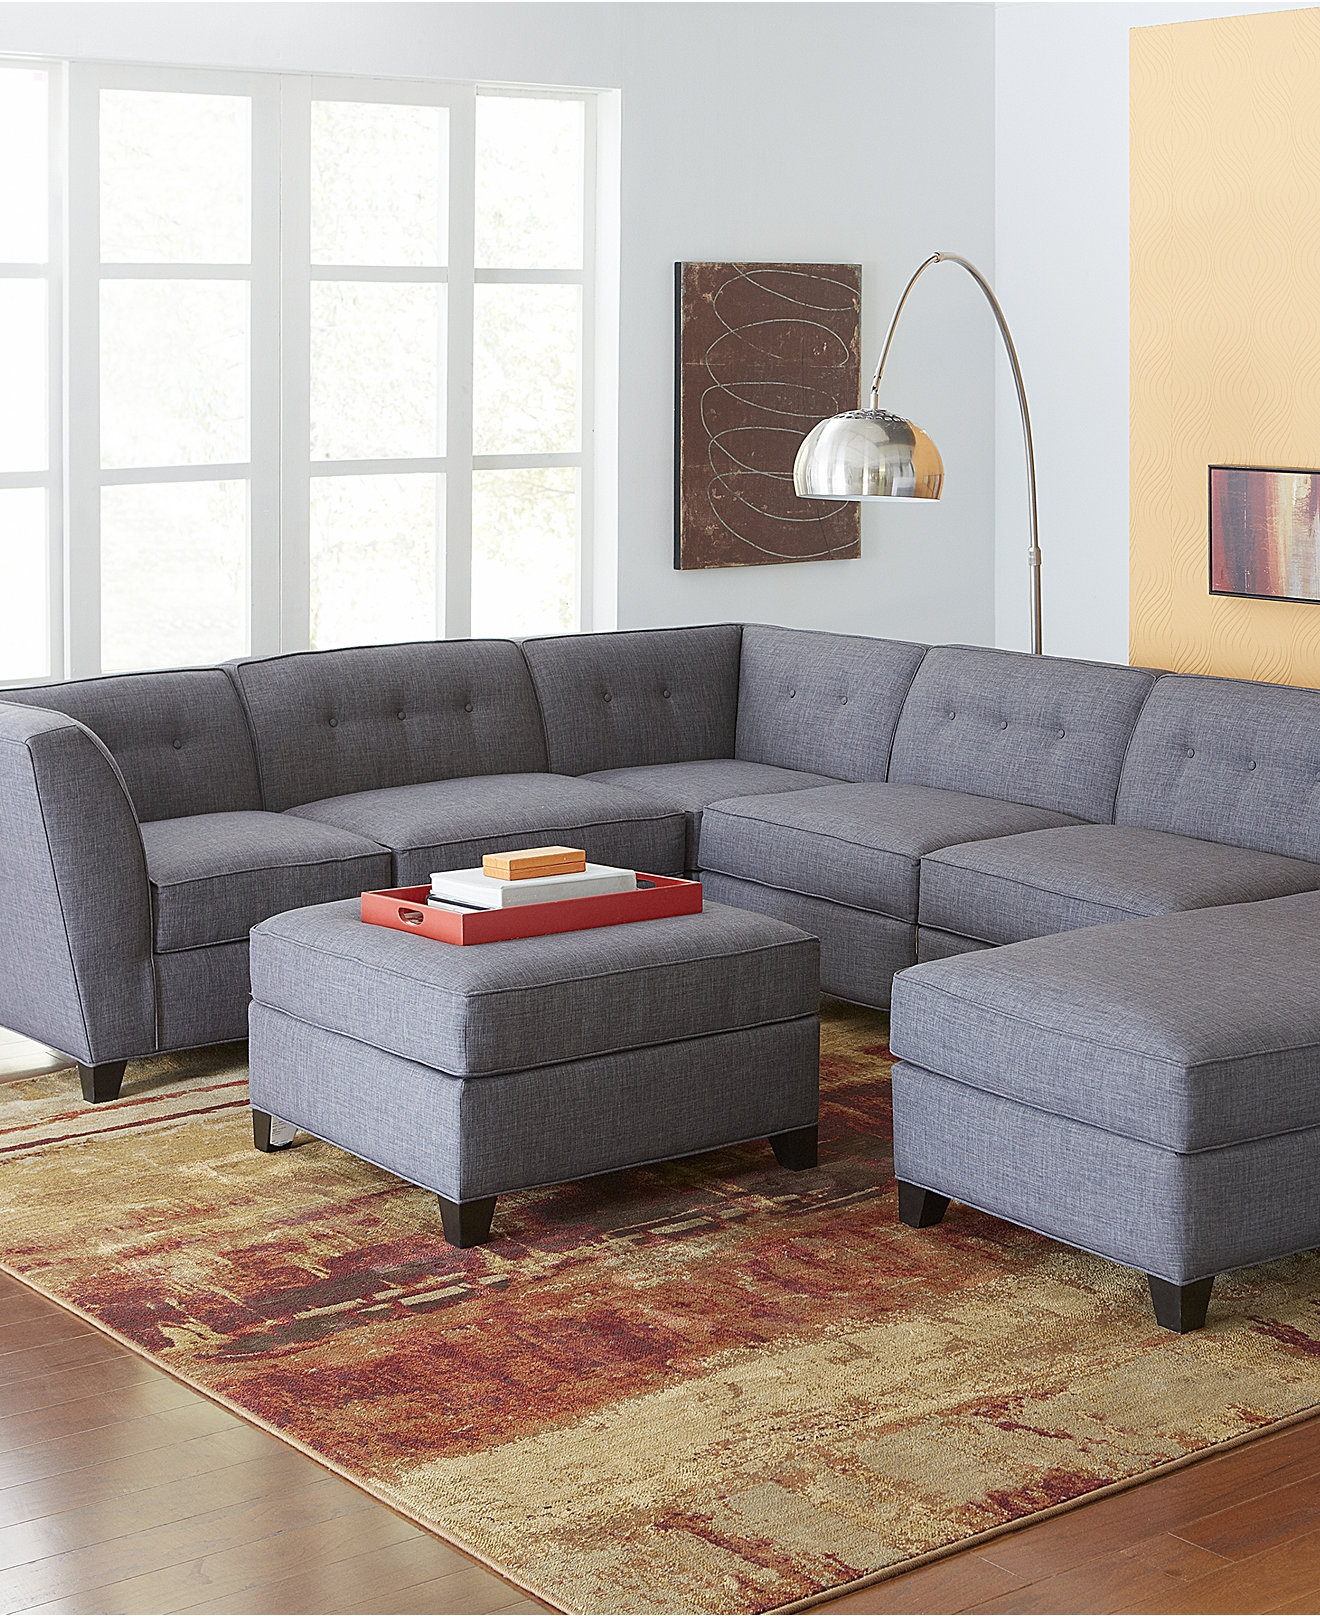 Interesting Gray Modular Sectional Sofa 83 For Sectional Sofas With Regard To Craigslist Sectional Sofa (#8 of 12)